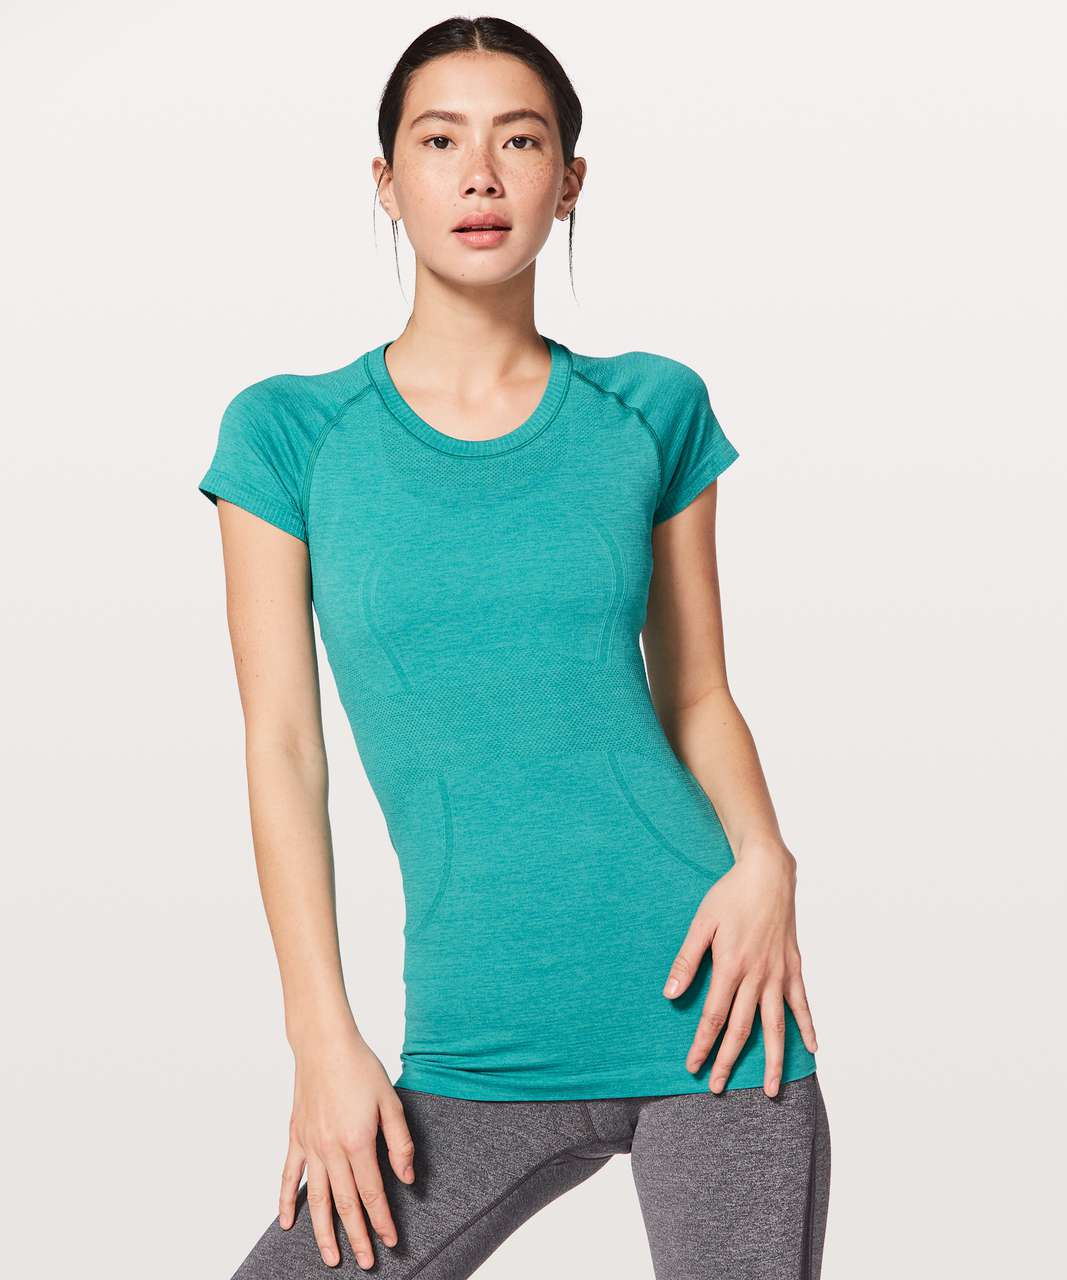 Lululemon Swiftly Tech Short Sleeve Crew - Eucalyptus / Spirit Green